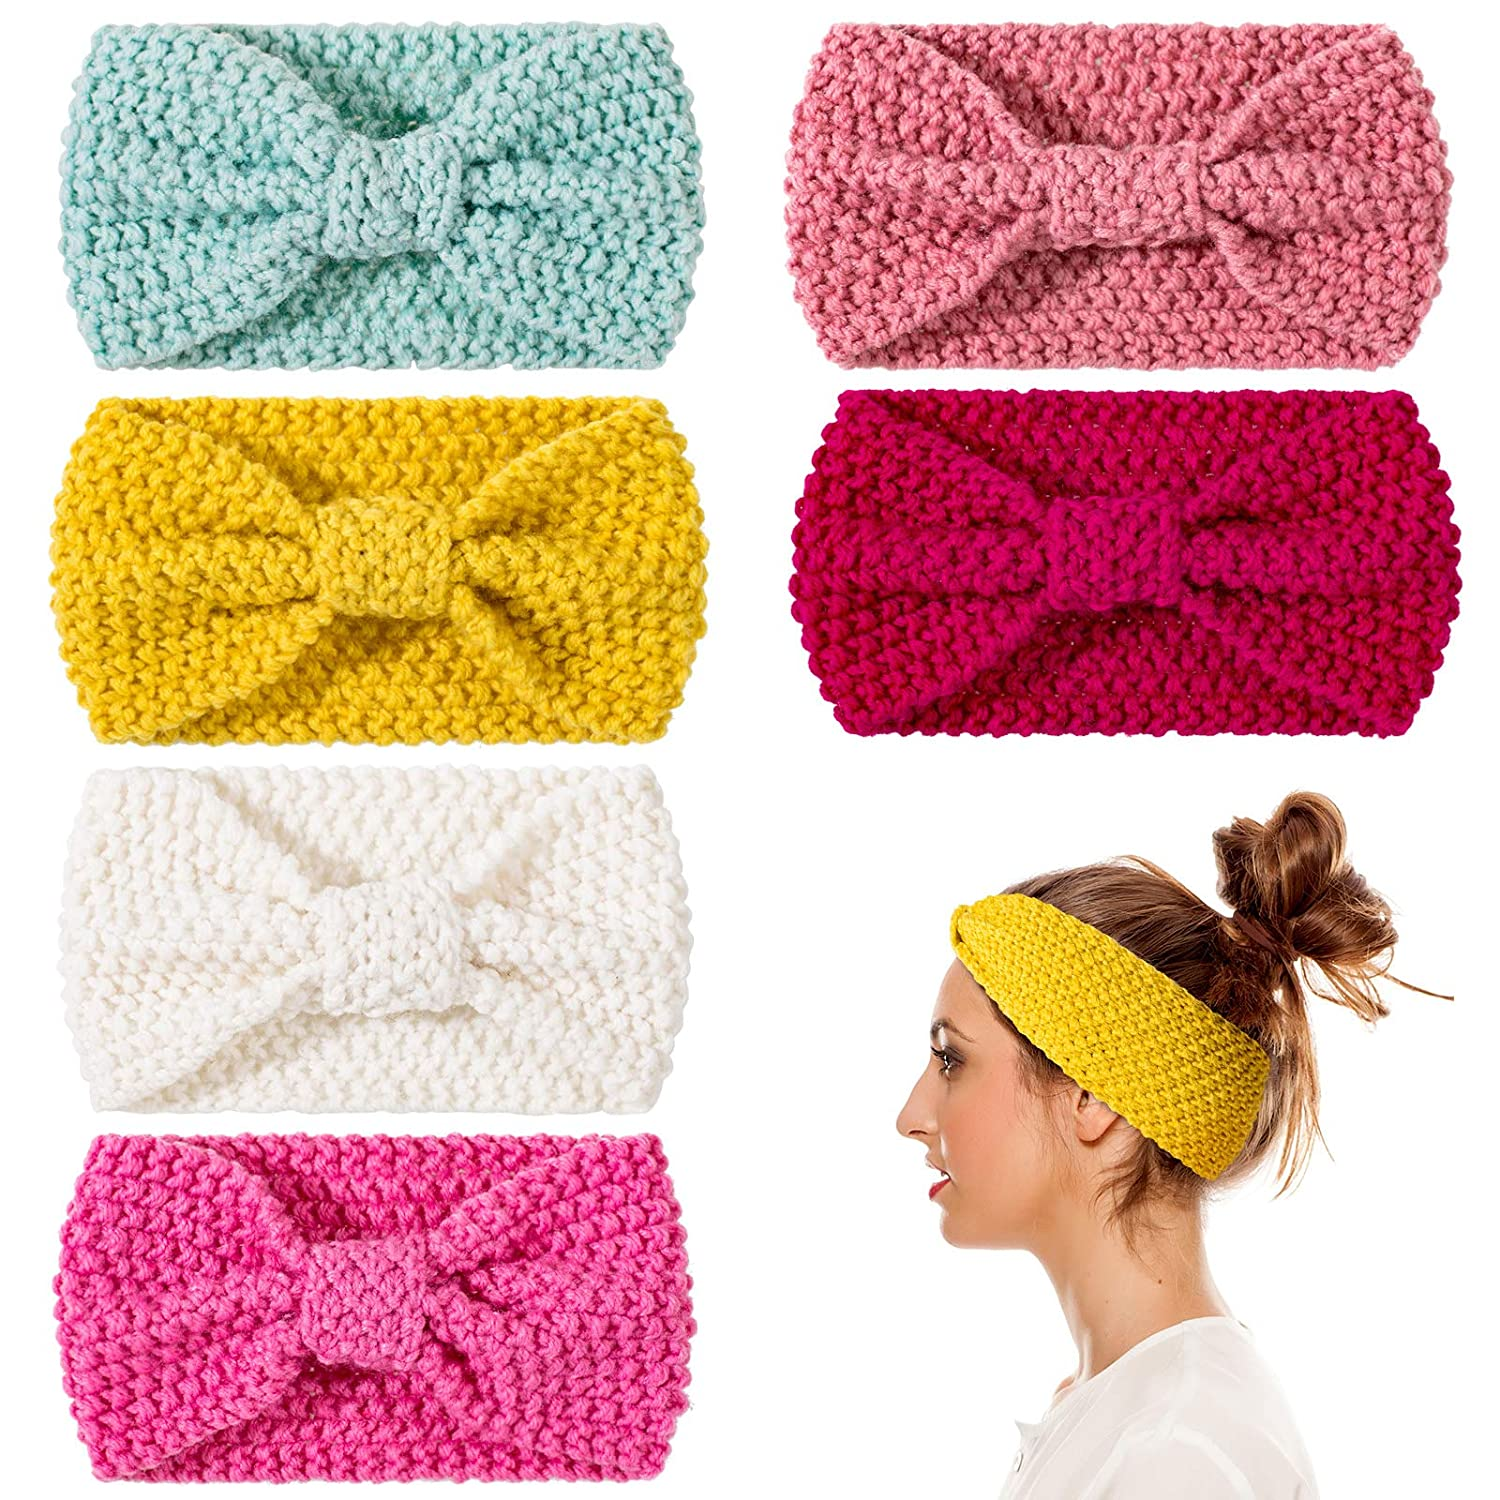 Whaline 6 Pieces Knit Headbands Winter Ear Warmers, Elastic Turban Head Wraps with Crocheted Bow Knot, Hair Band Accessories, Hair Scrunchies Scarves for Women Girls (Candy Colors)